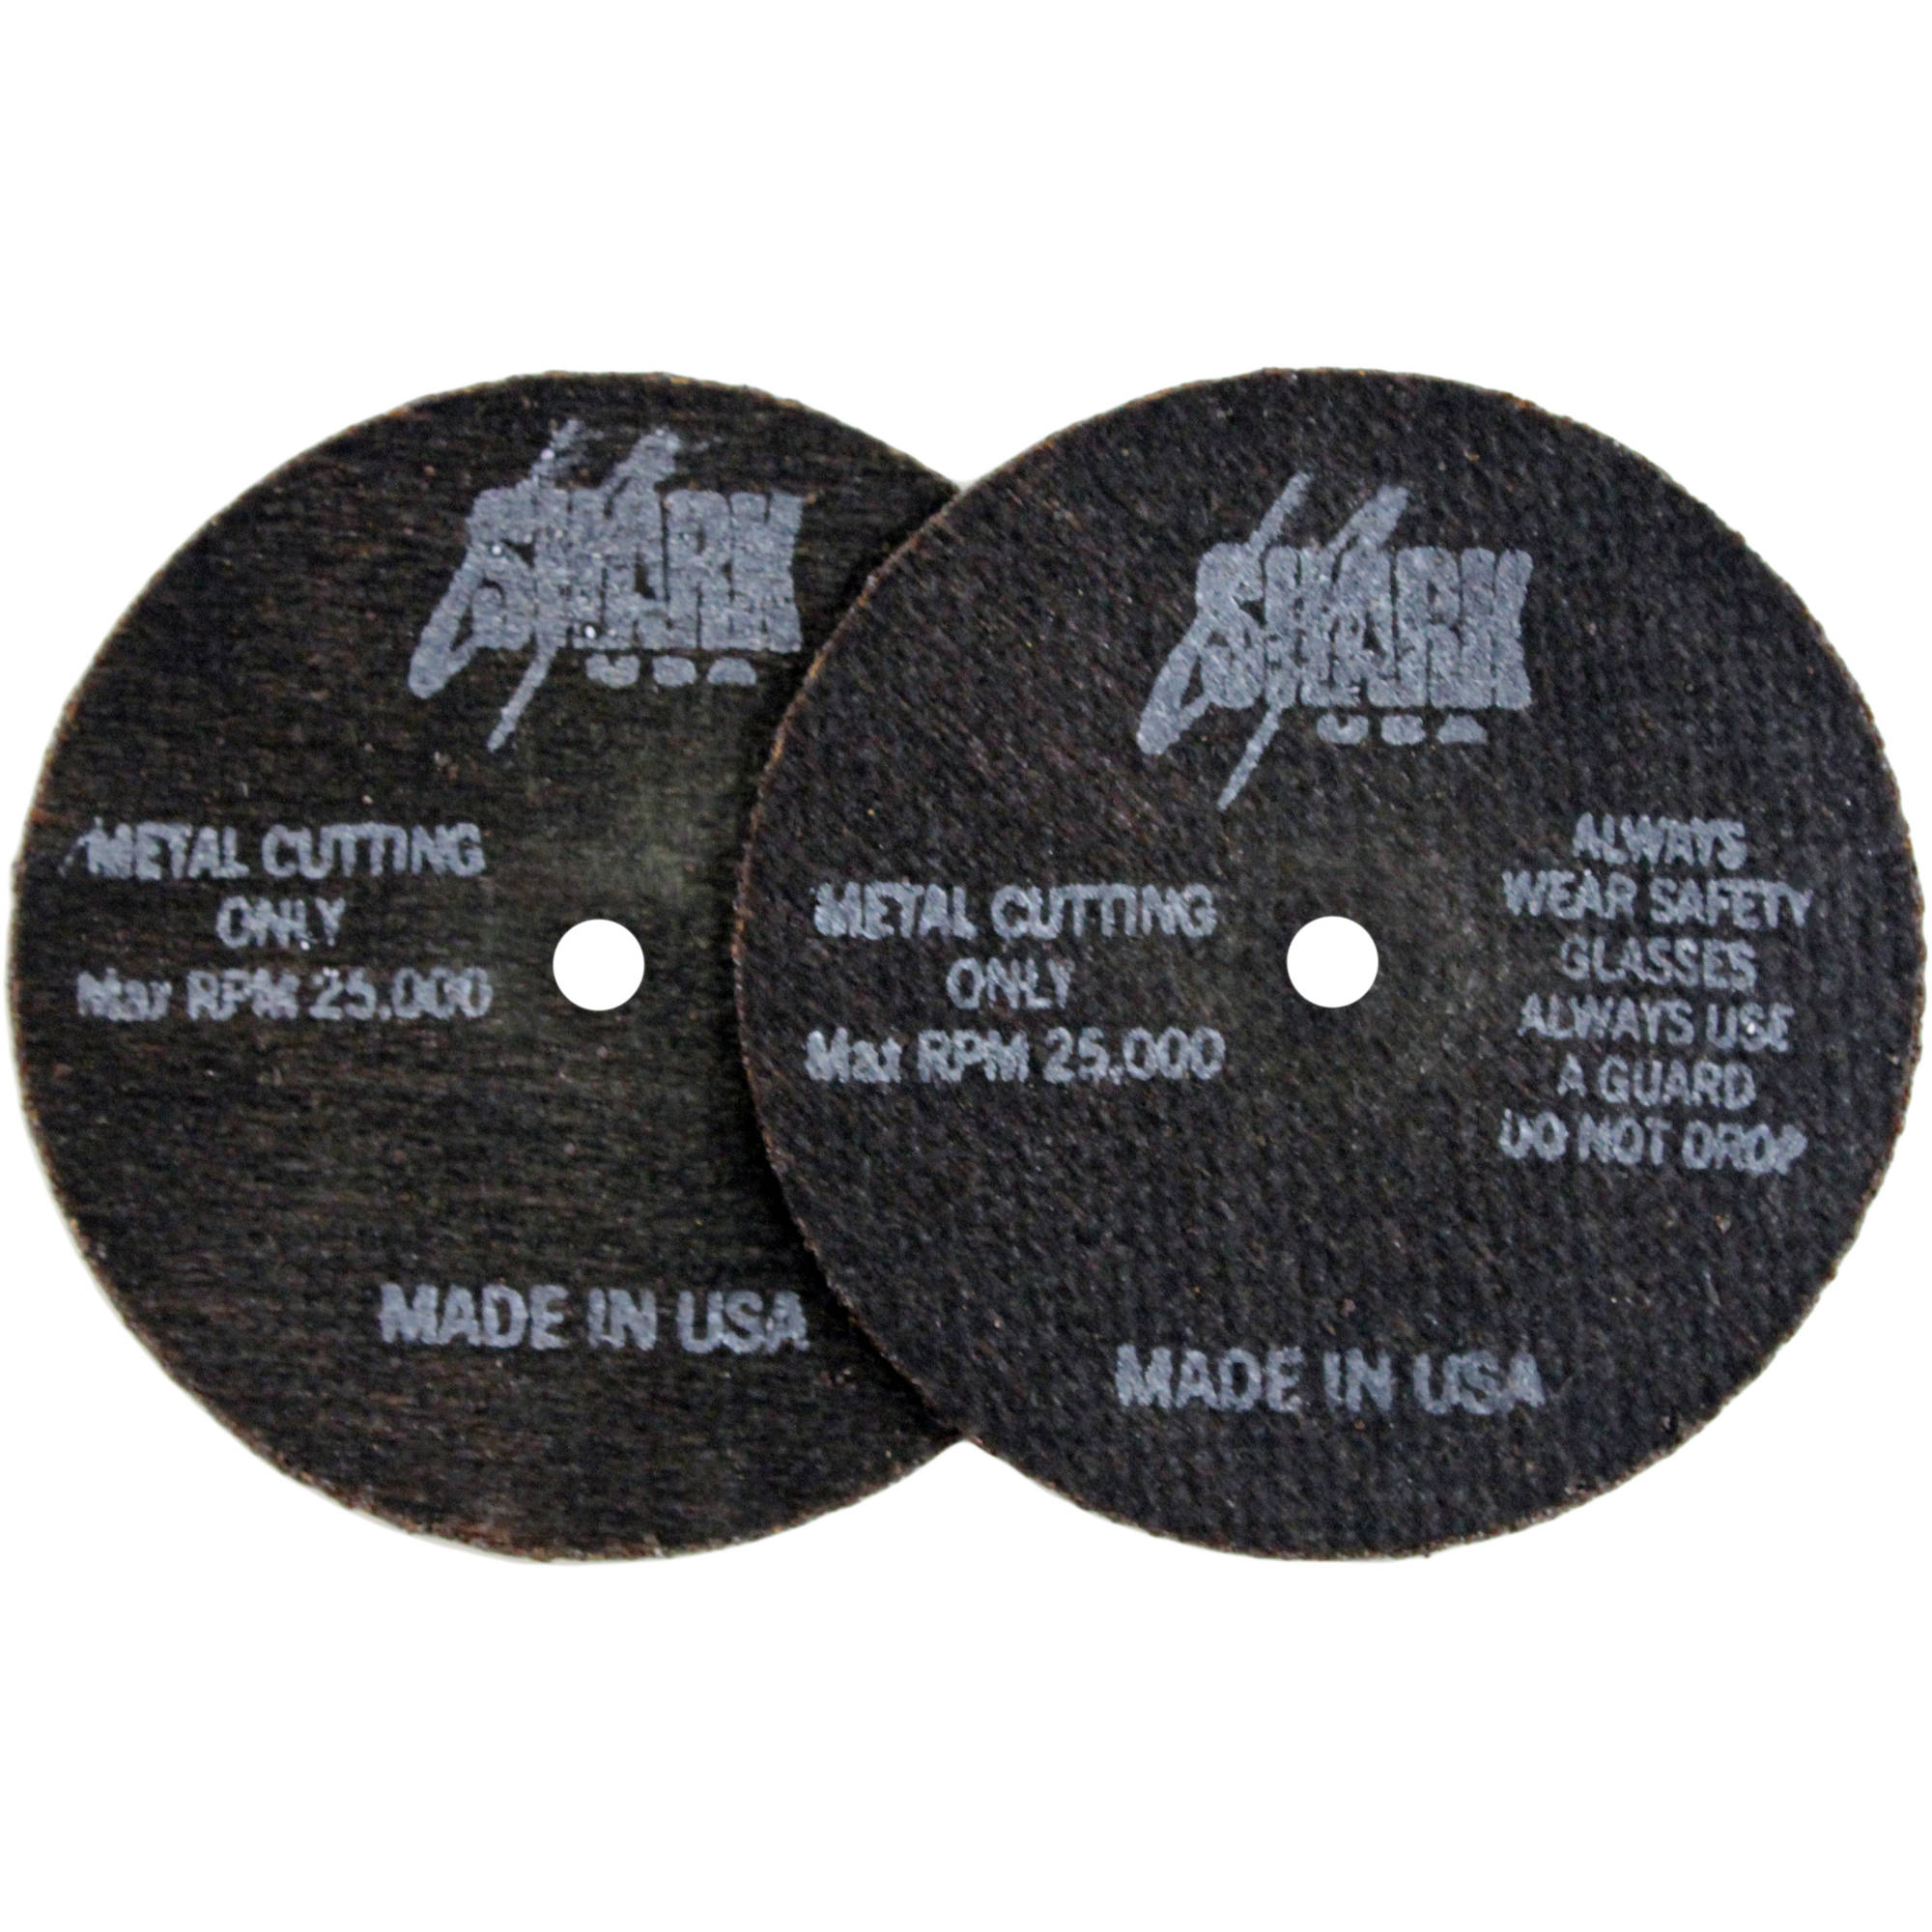 "Shark Cutoff Wheels, 3"" x 1/16"" x 1/4"", 10pk, 54 Grit"